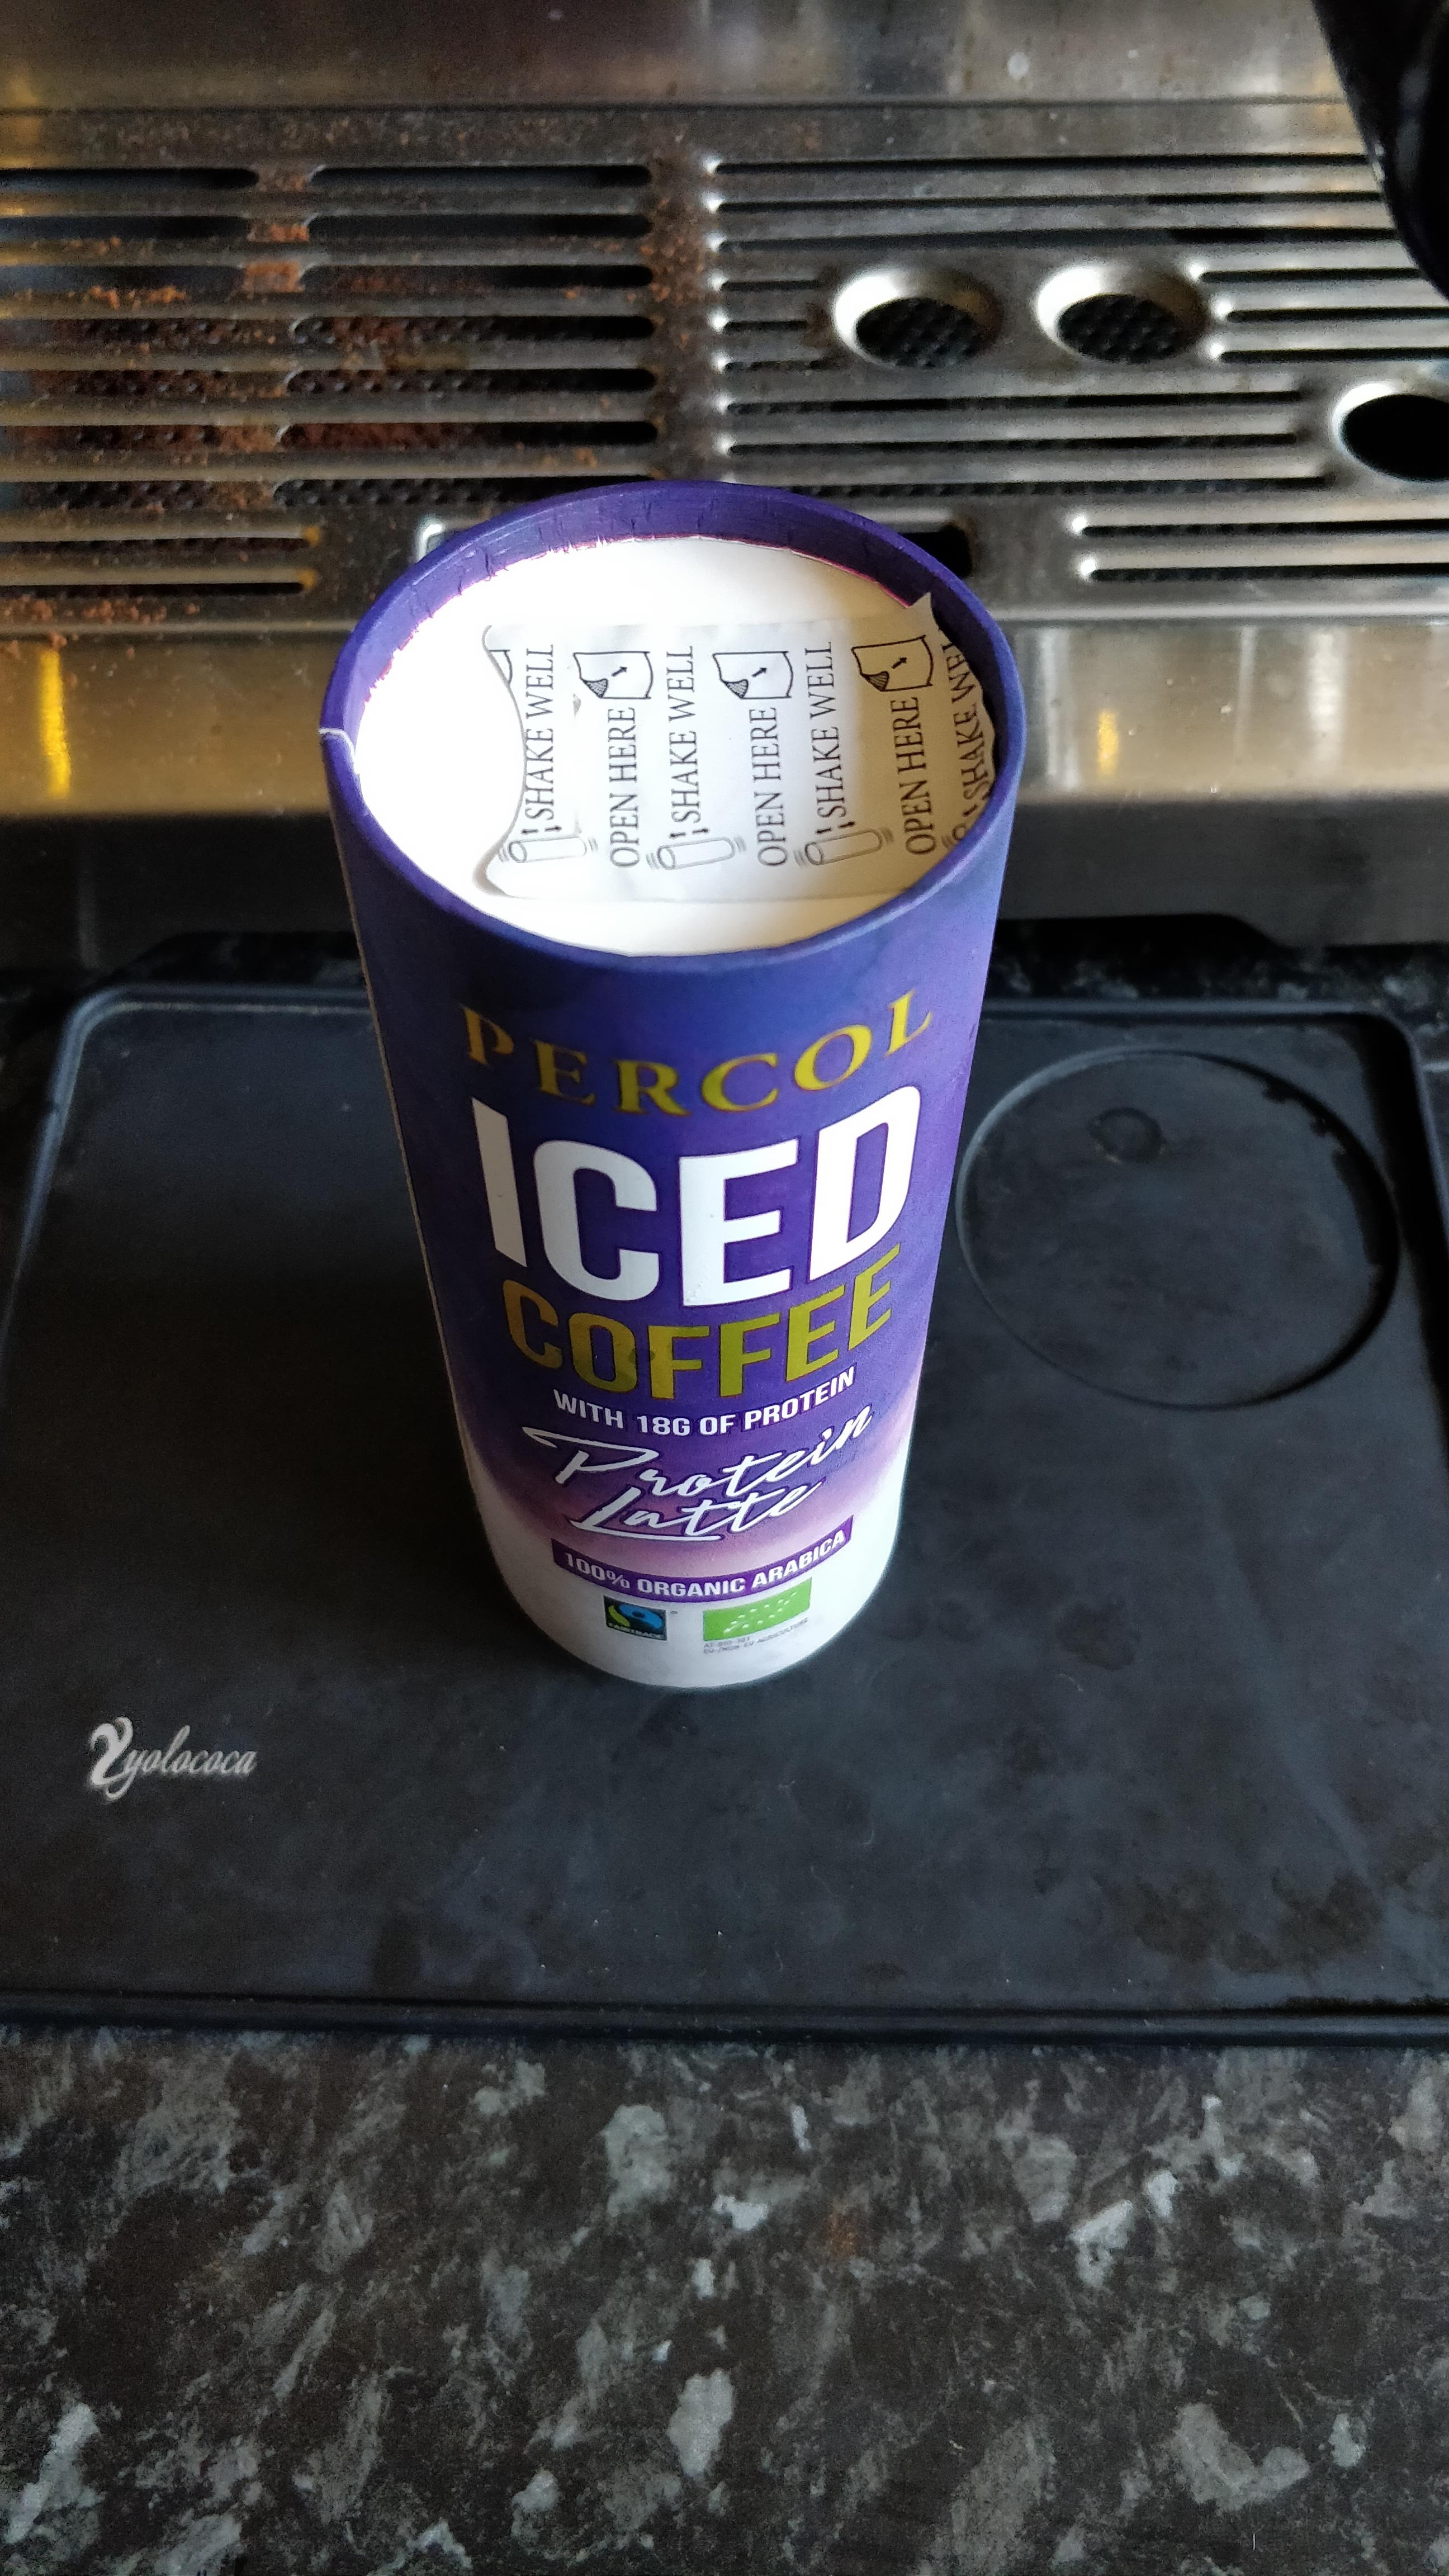 Review 18 Percol Iced Coffee Protein Latte The Proto